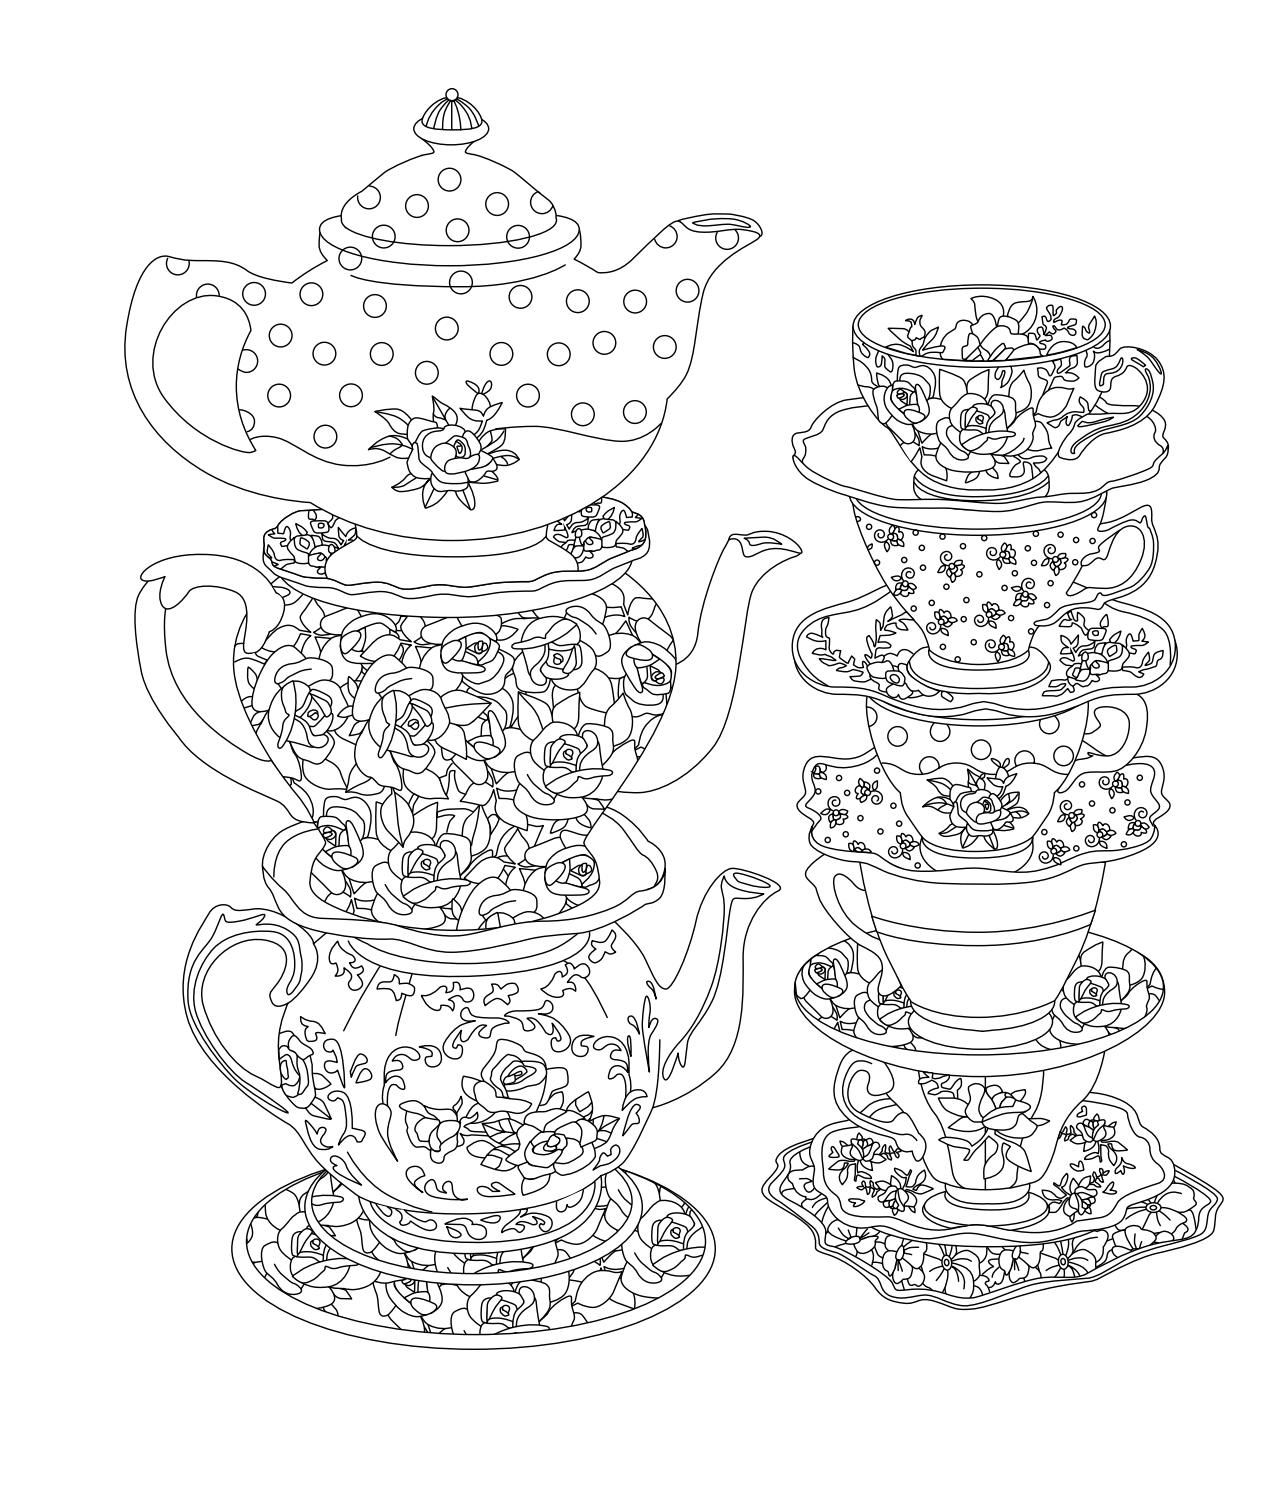 Elegant Tea Party Coloring Book  Coloring pages, Coloring books